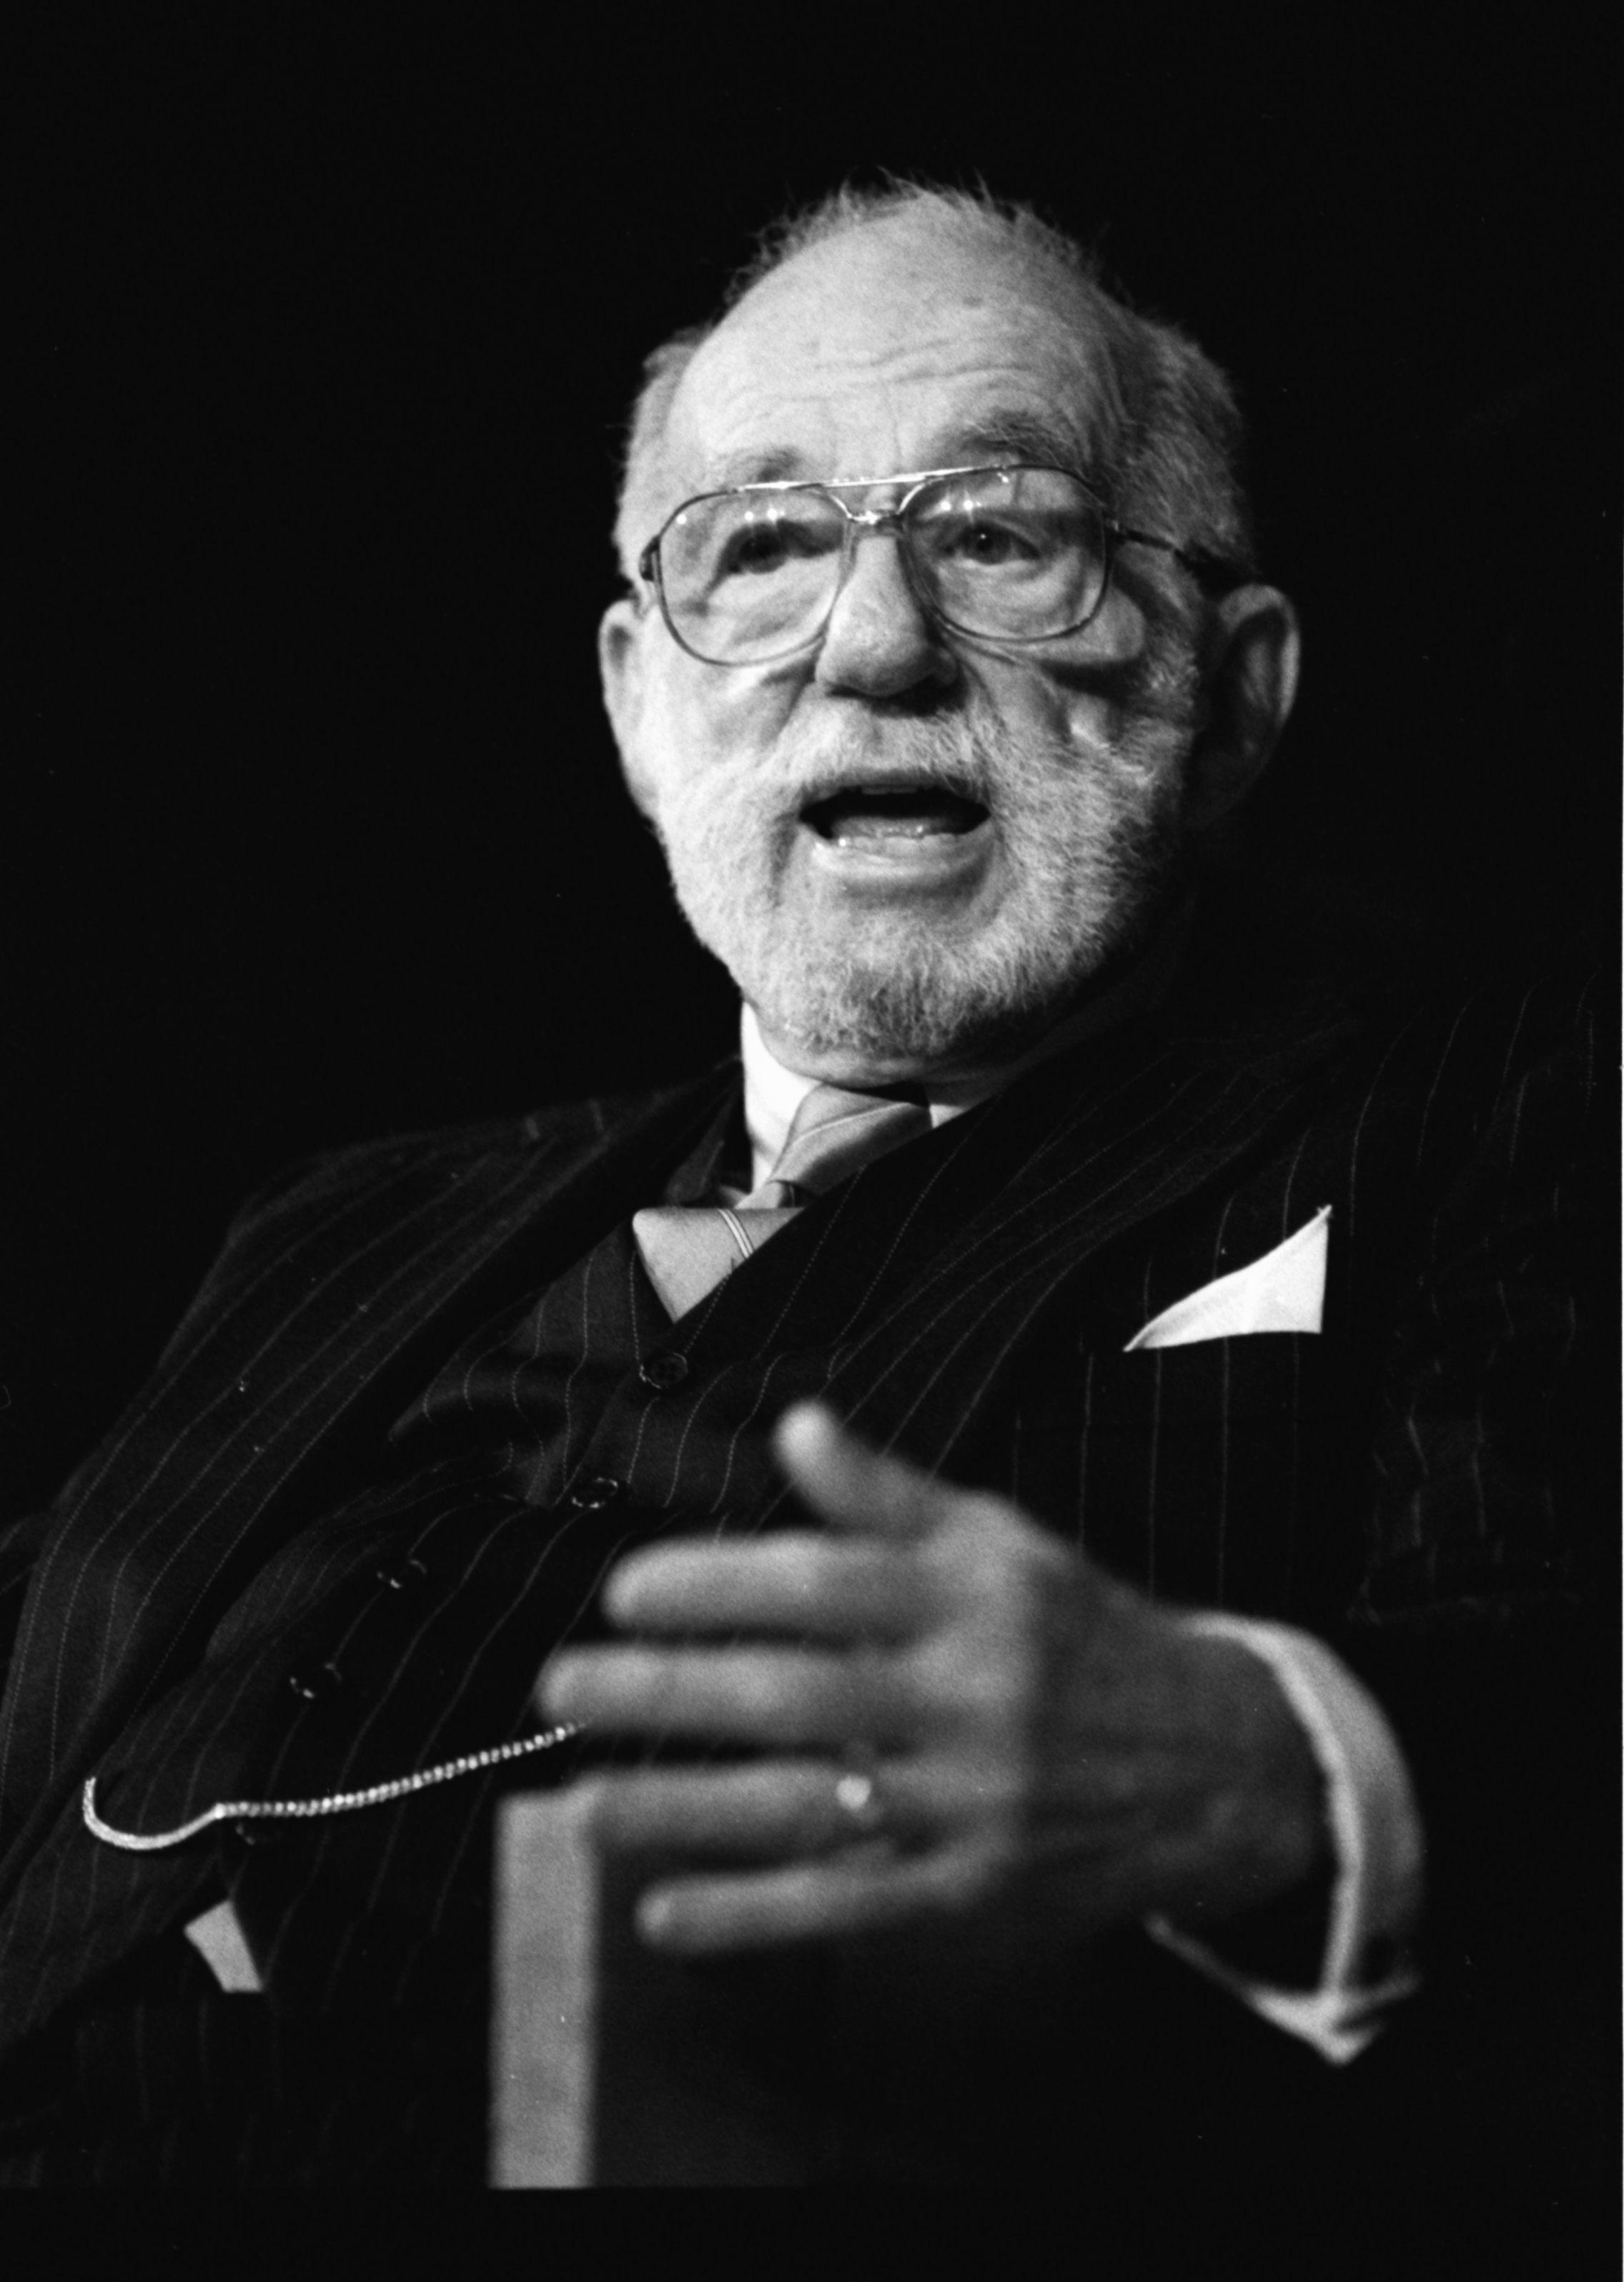 a biography of dr benjamin spock Benjamin mclane spock was born in new haven, connecticut, on 2  bloom,  lynn z doctor spock: biography of a conservative radical.